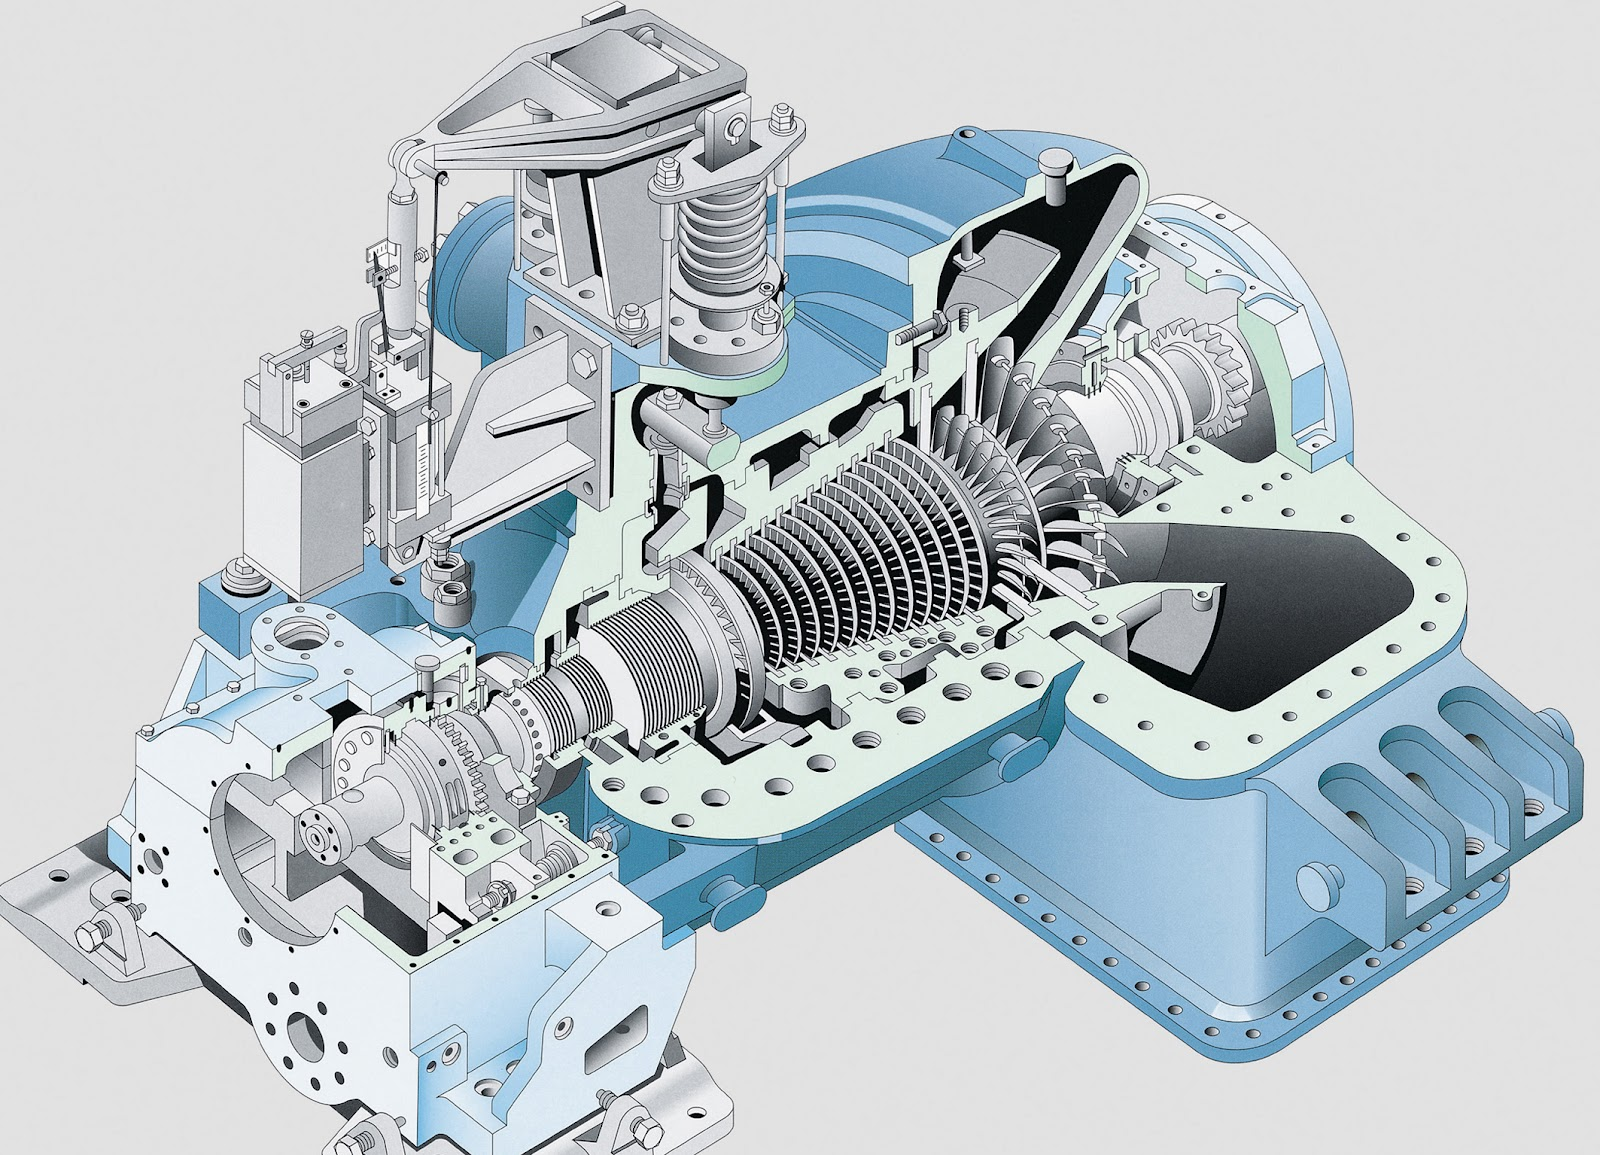 the steam turbine Industrial steam turbine condensing steam turbine back pressure steam turbine extracting condensing steam turbine introduction steam turbine extraction back pressure steam turbine low-paremeter steam turbine governing system about introduction after-sale service back pressure steam turbine manufacture & test images.